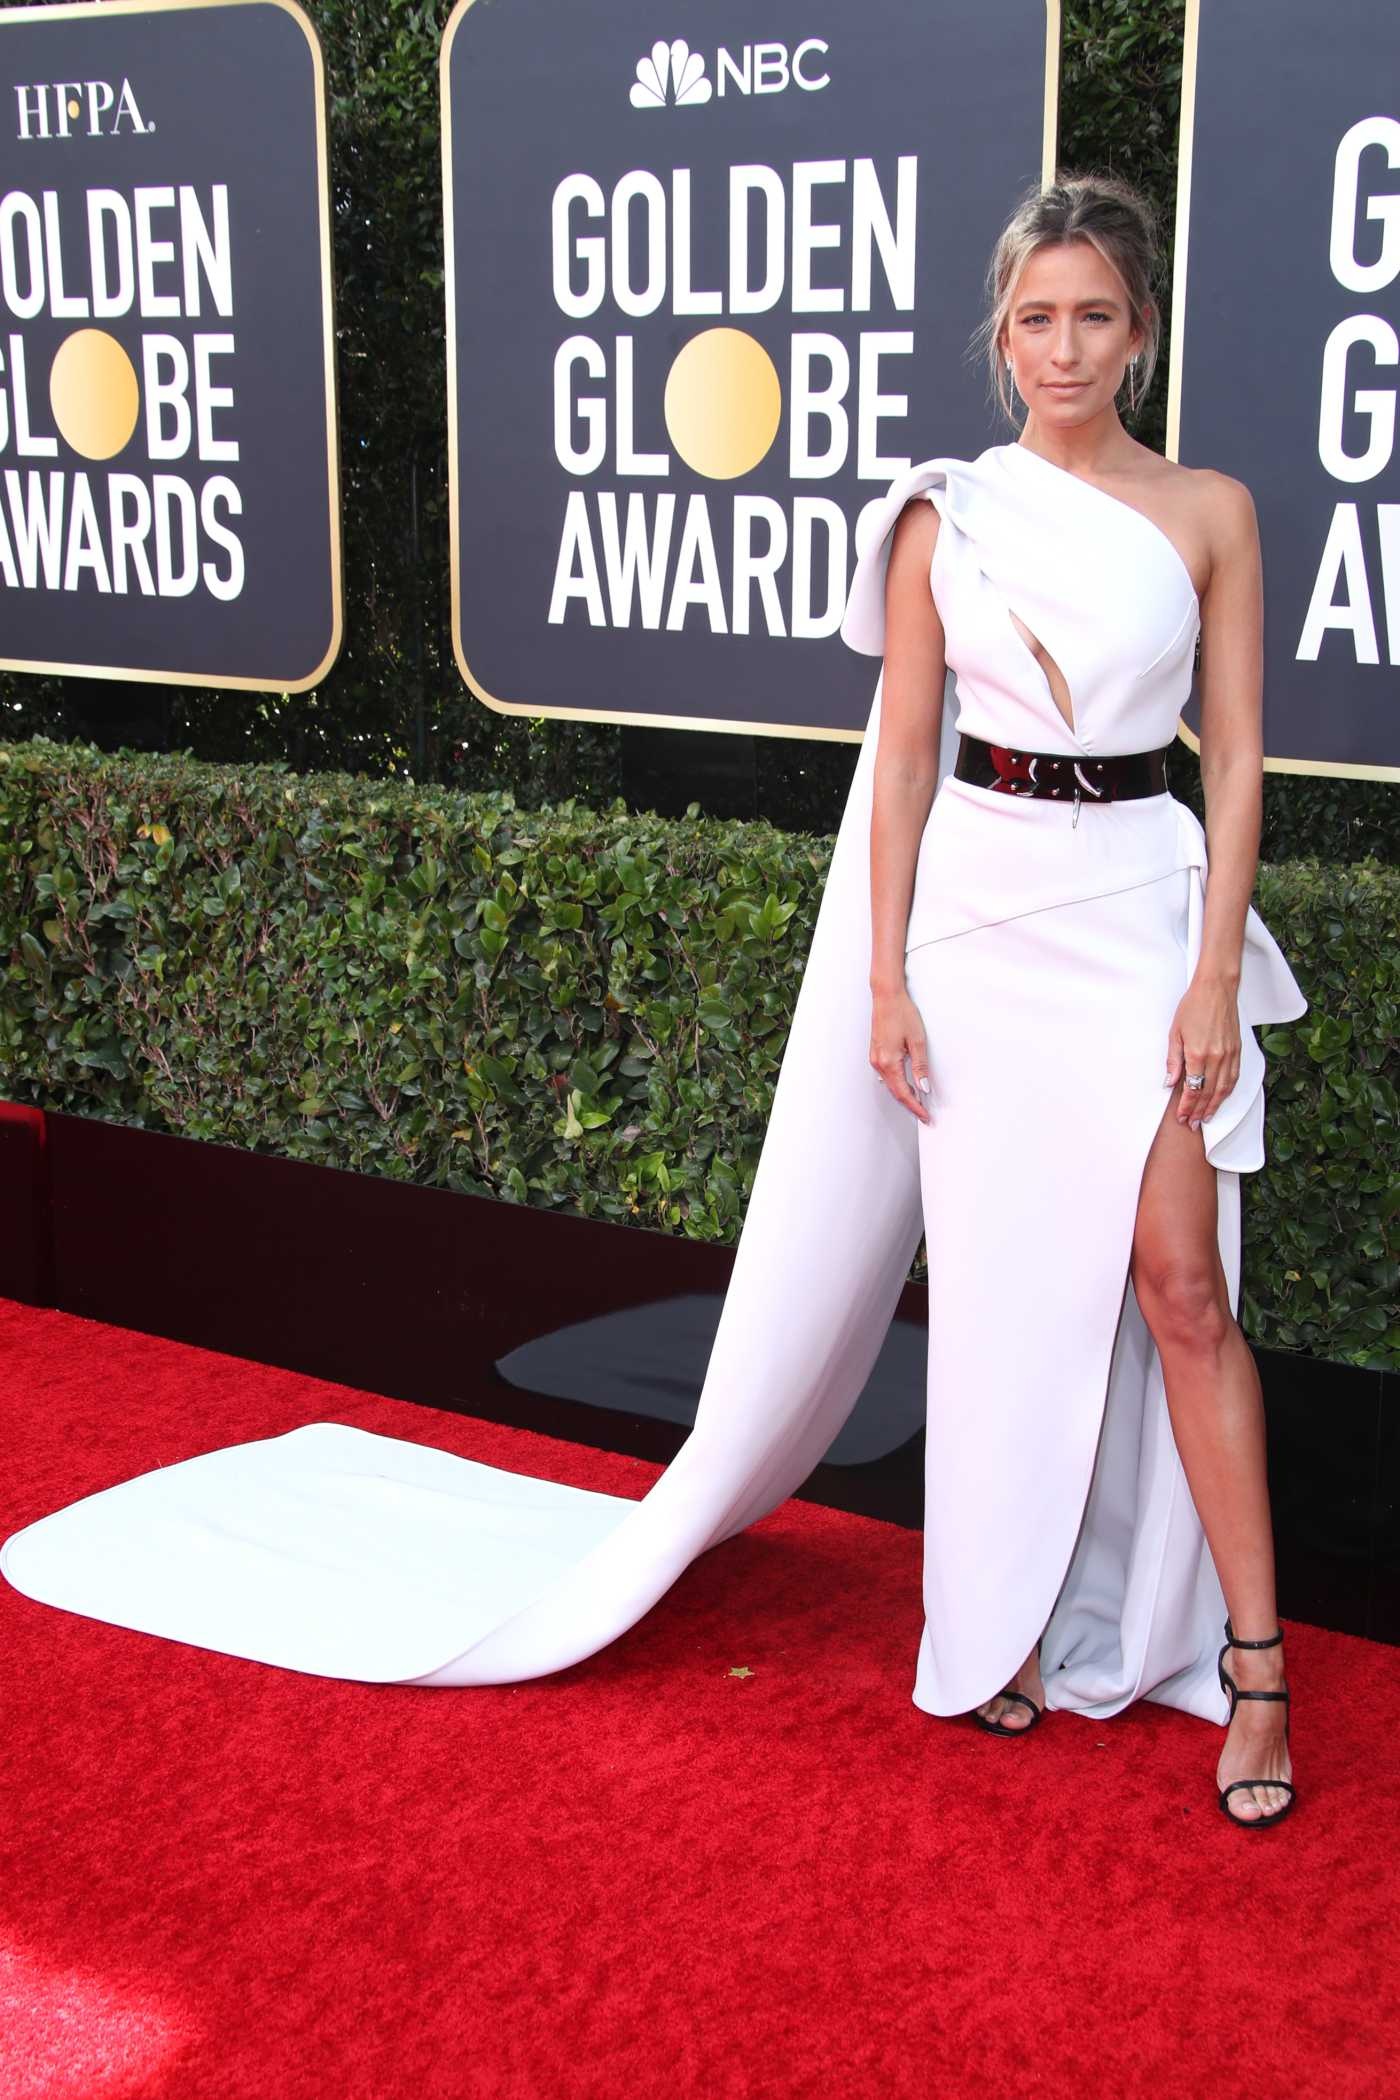 Renee Bargh Attends the 77th Annual Golden Globe Awards at the Beverly Hilton Hotel in Beverly Hills 01/05/2020